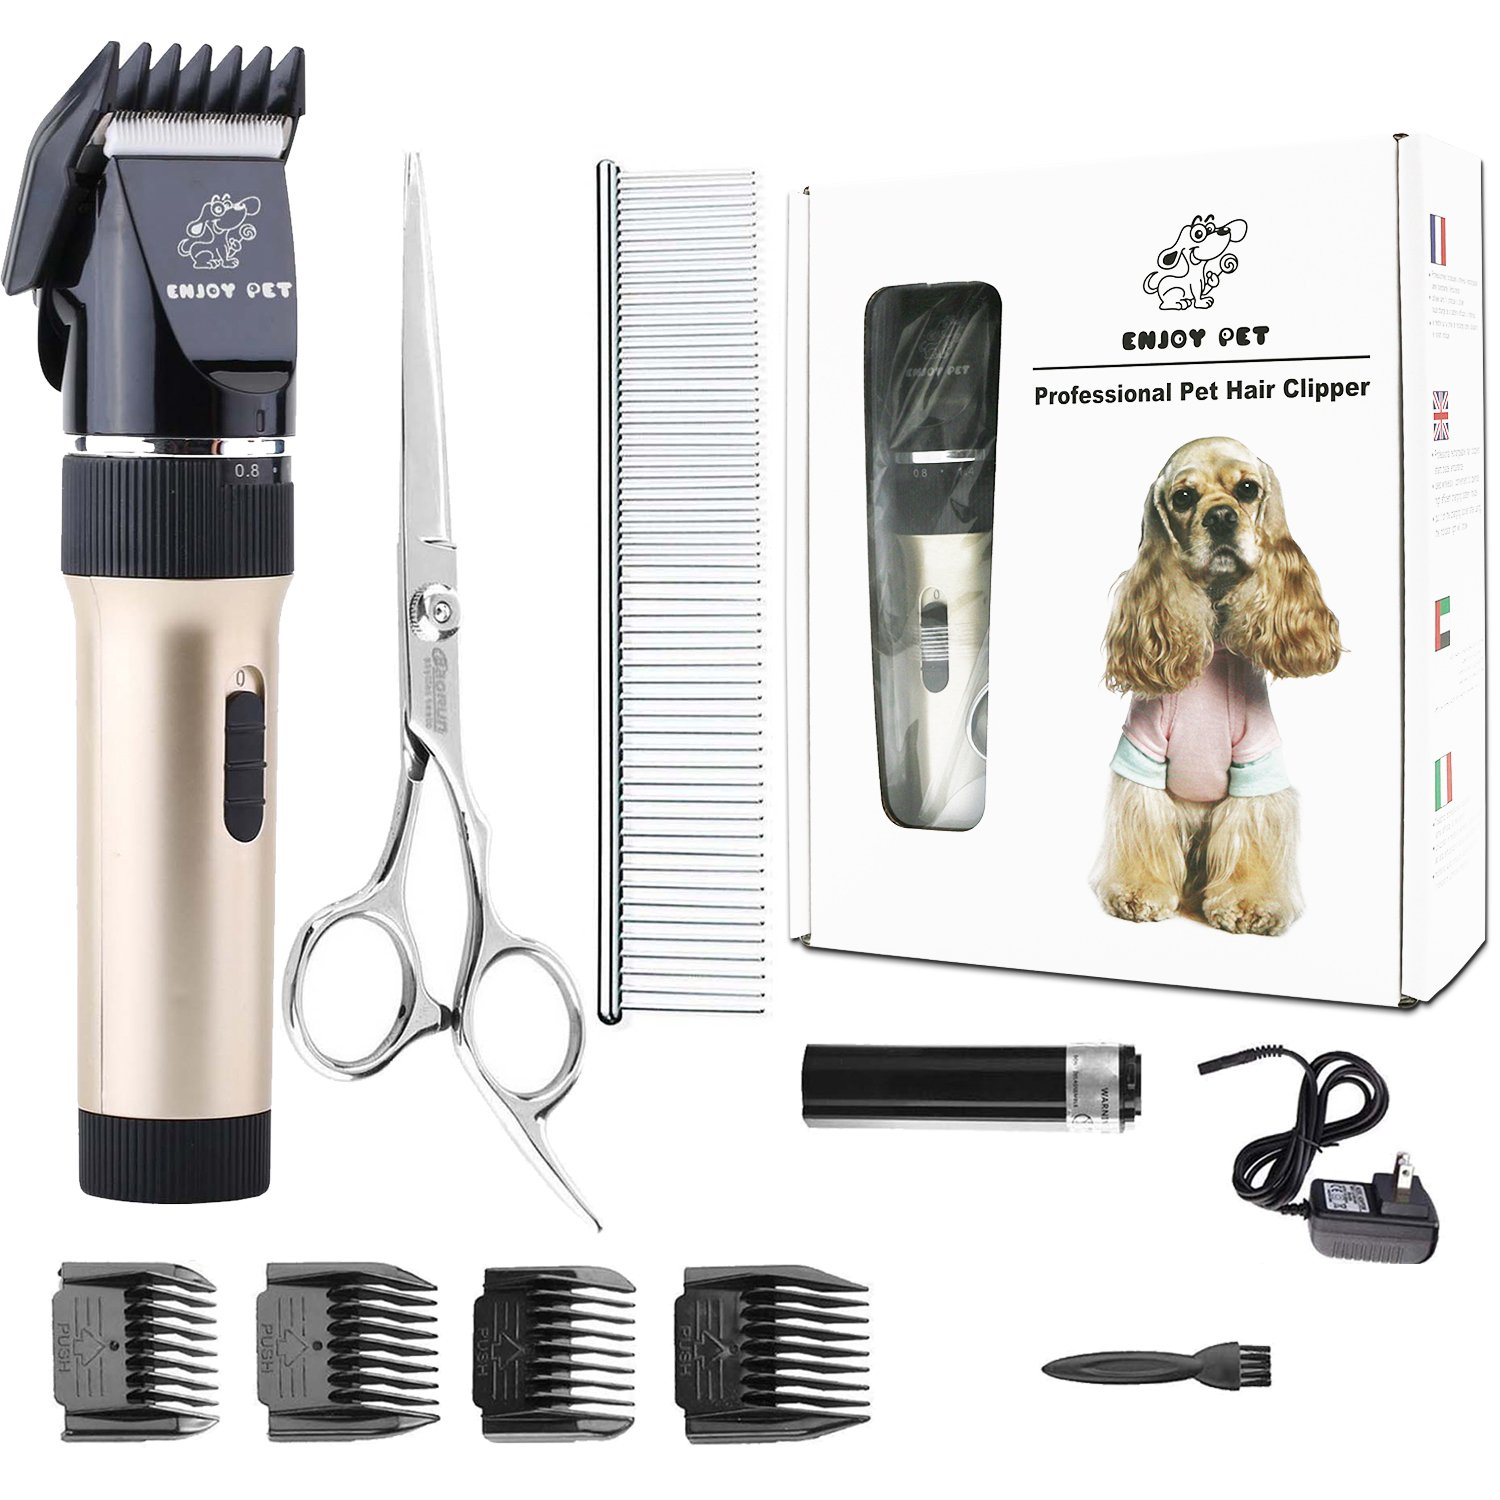 Enjoy Pet Professional Clipper Black Friday deal 2019